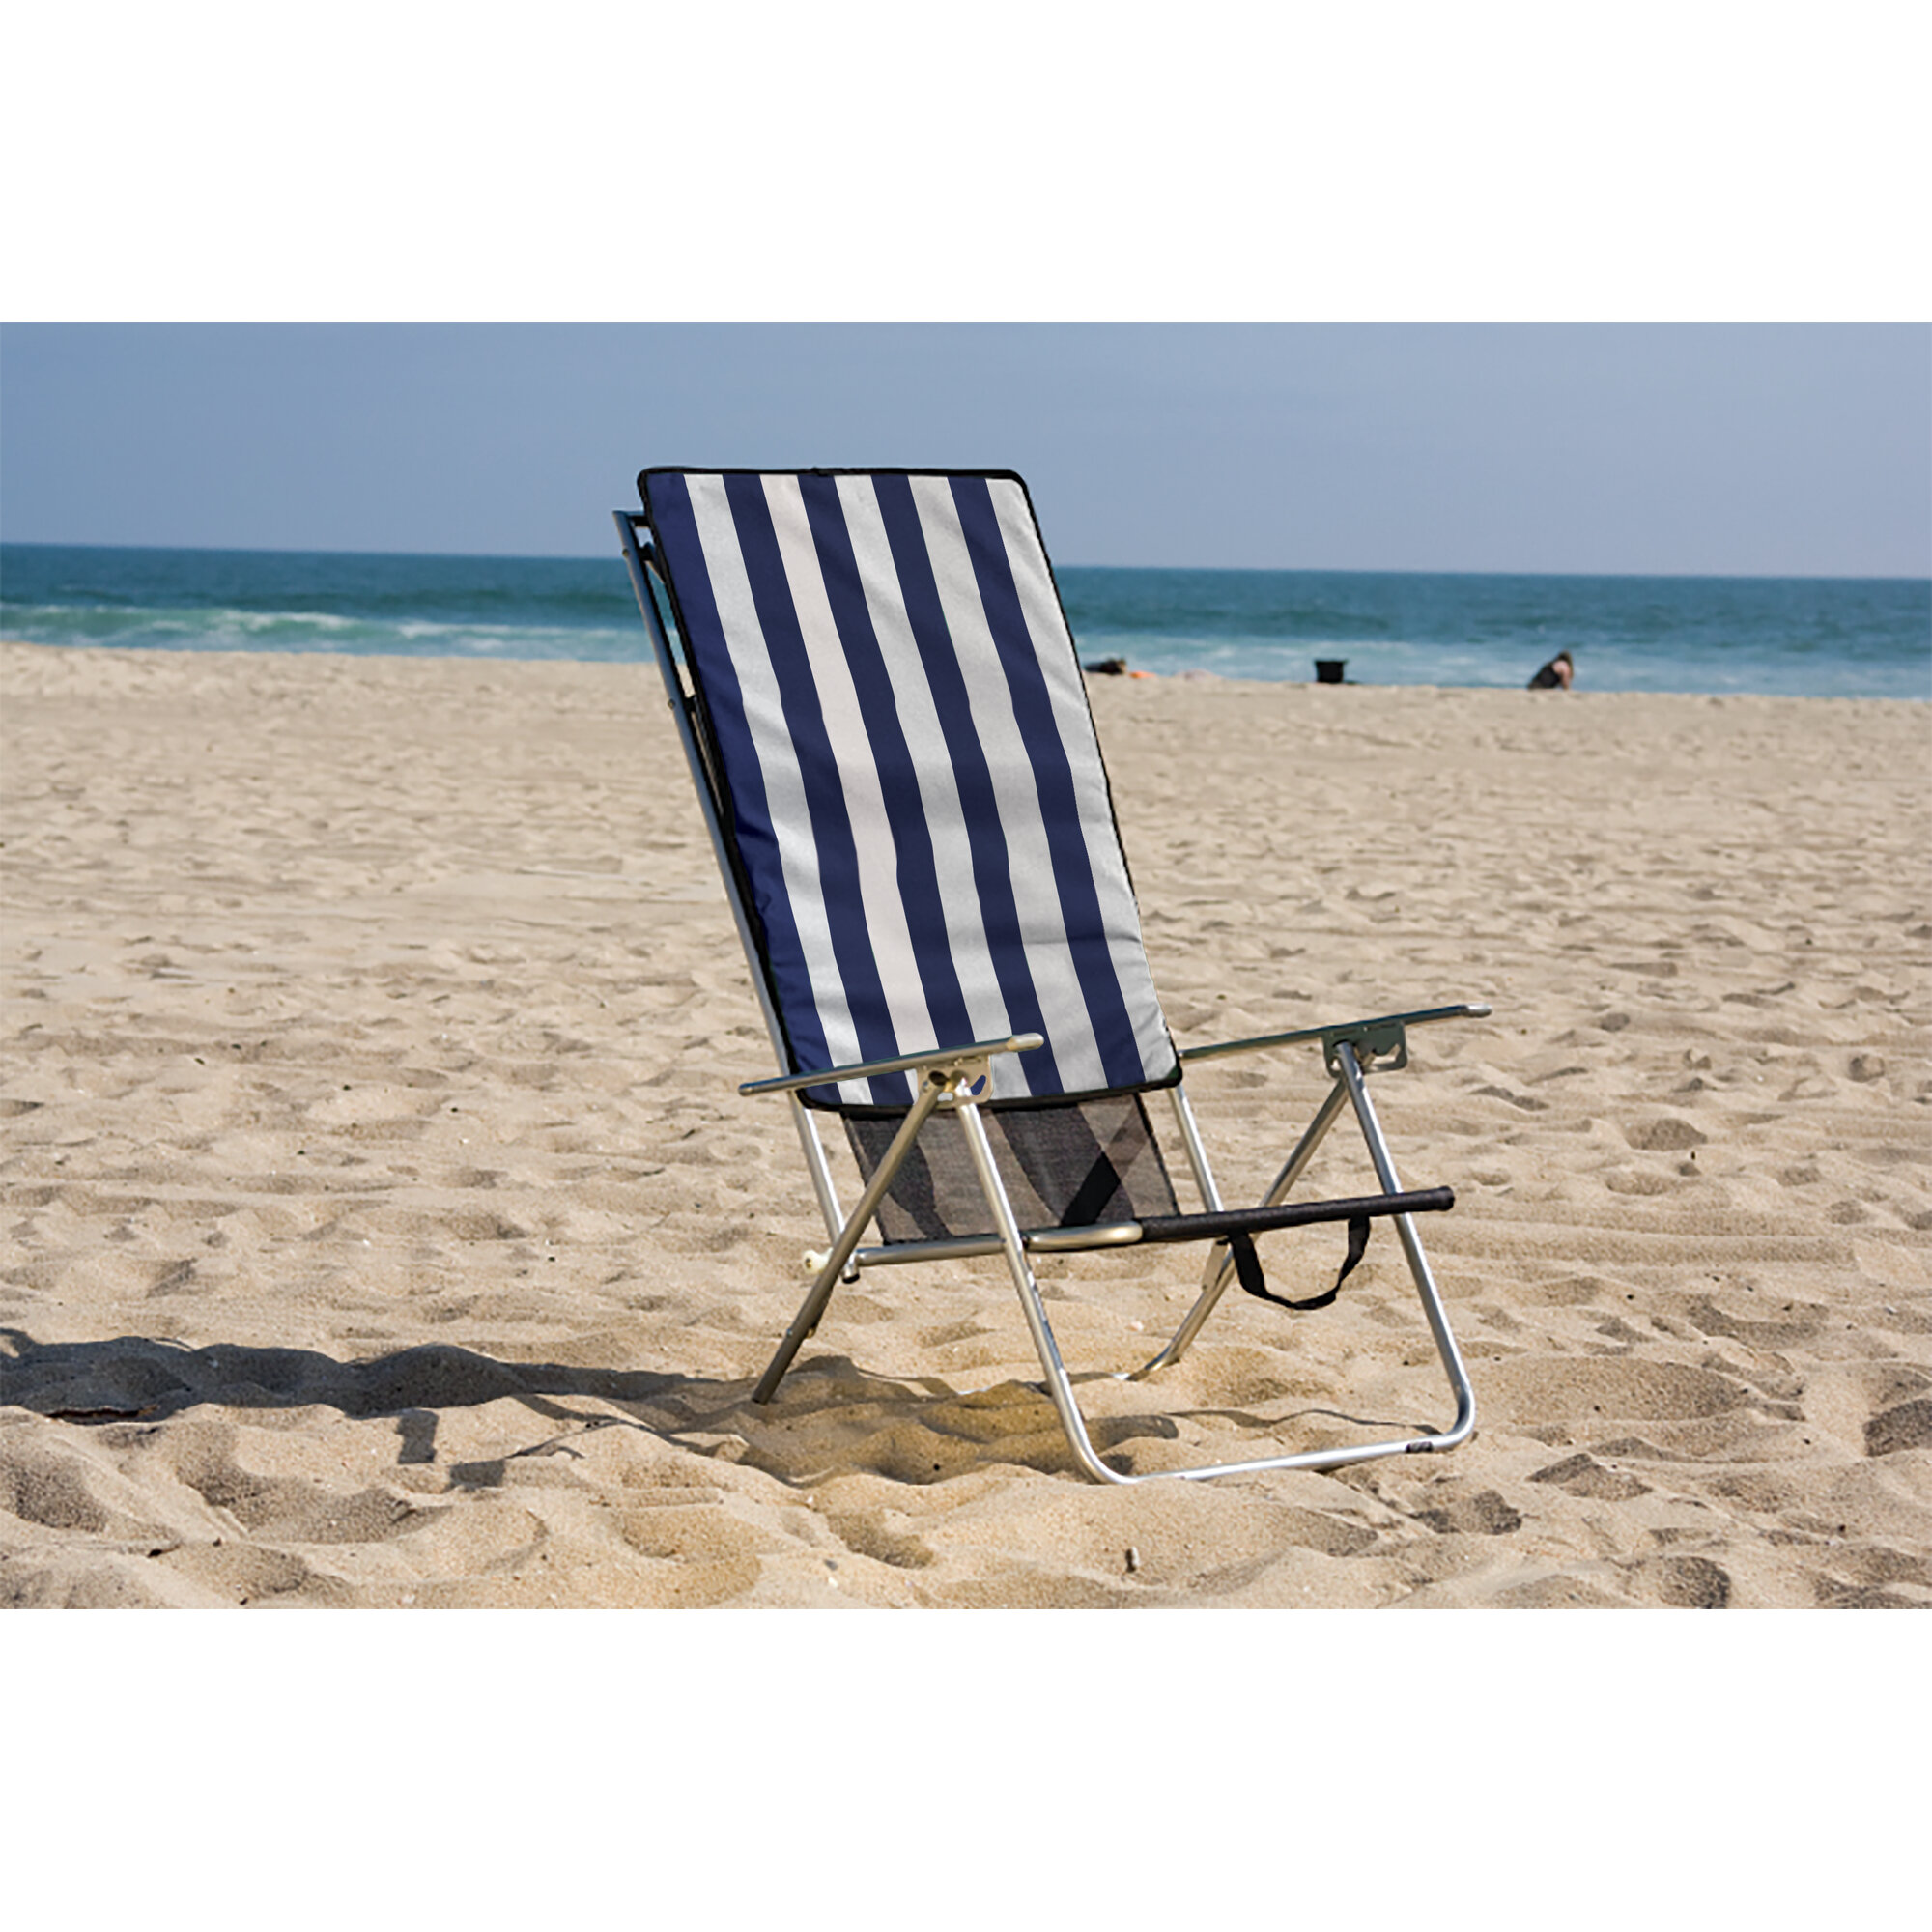 Pleasing Shade Folding Beach Chair Machost Co Dining Chair Design Ideas Machostcouk